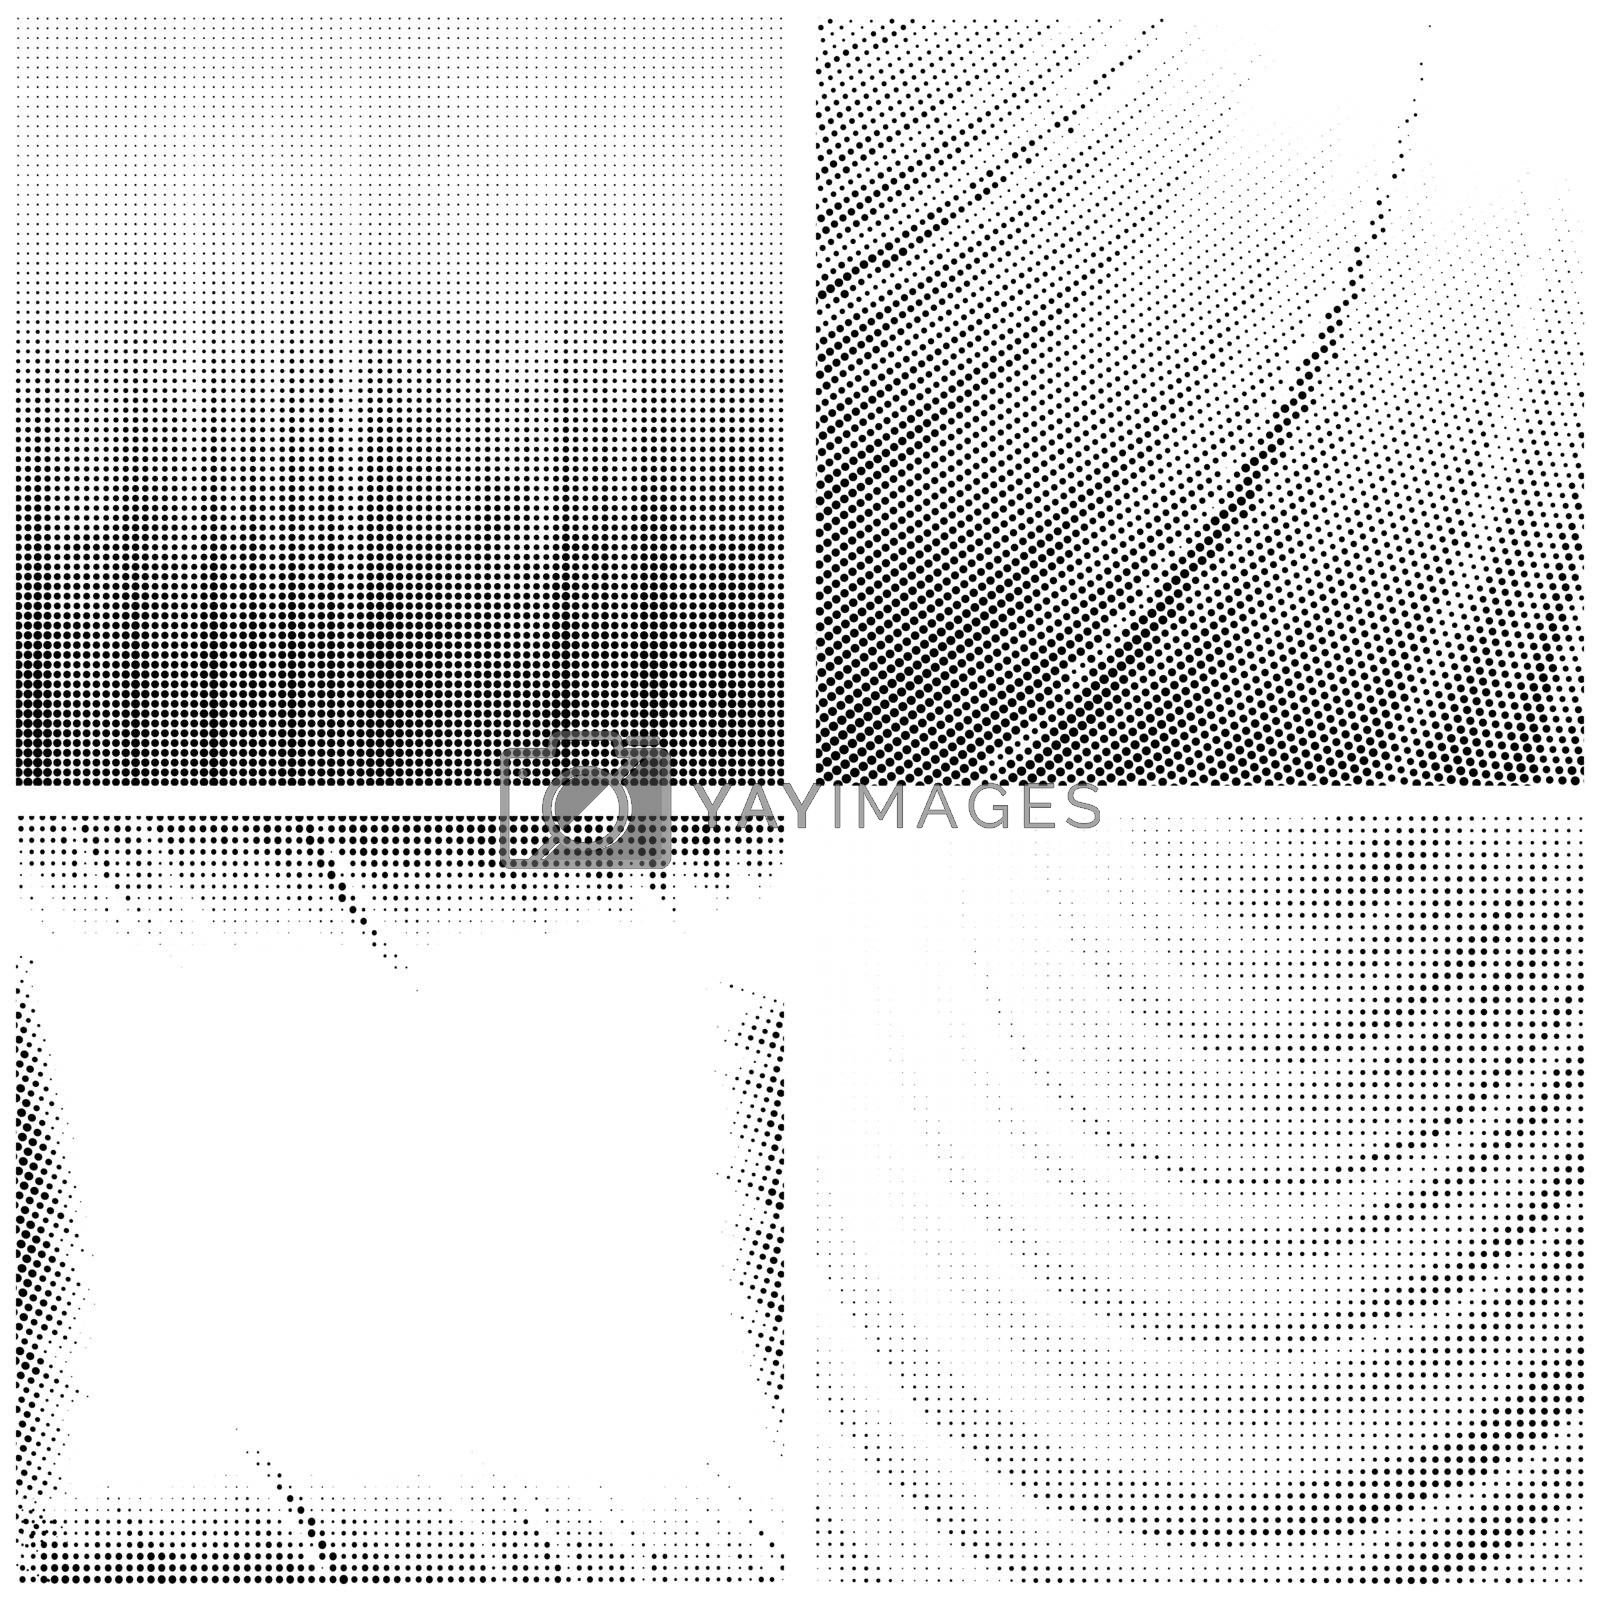 Halftone Pattern. Set of Dots. Dotted Texture on White Background. Overlay Grunge Template. Distress Linear Design. Fade Monochrome Points. Pop Art Backdrop.